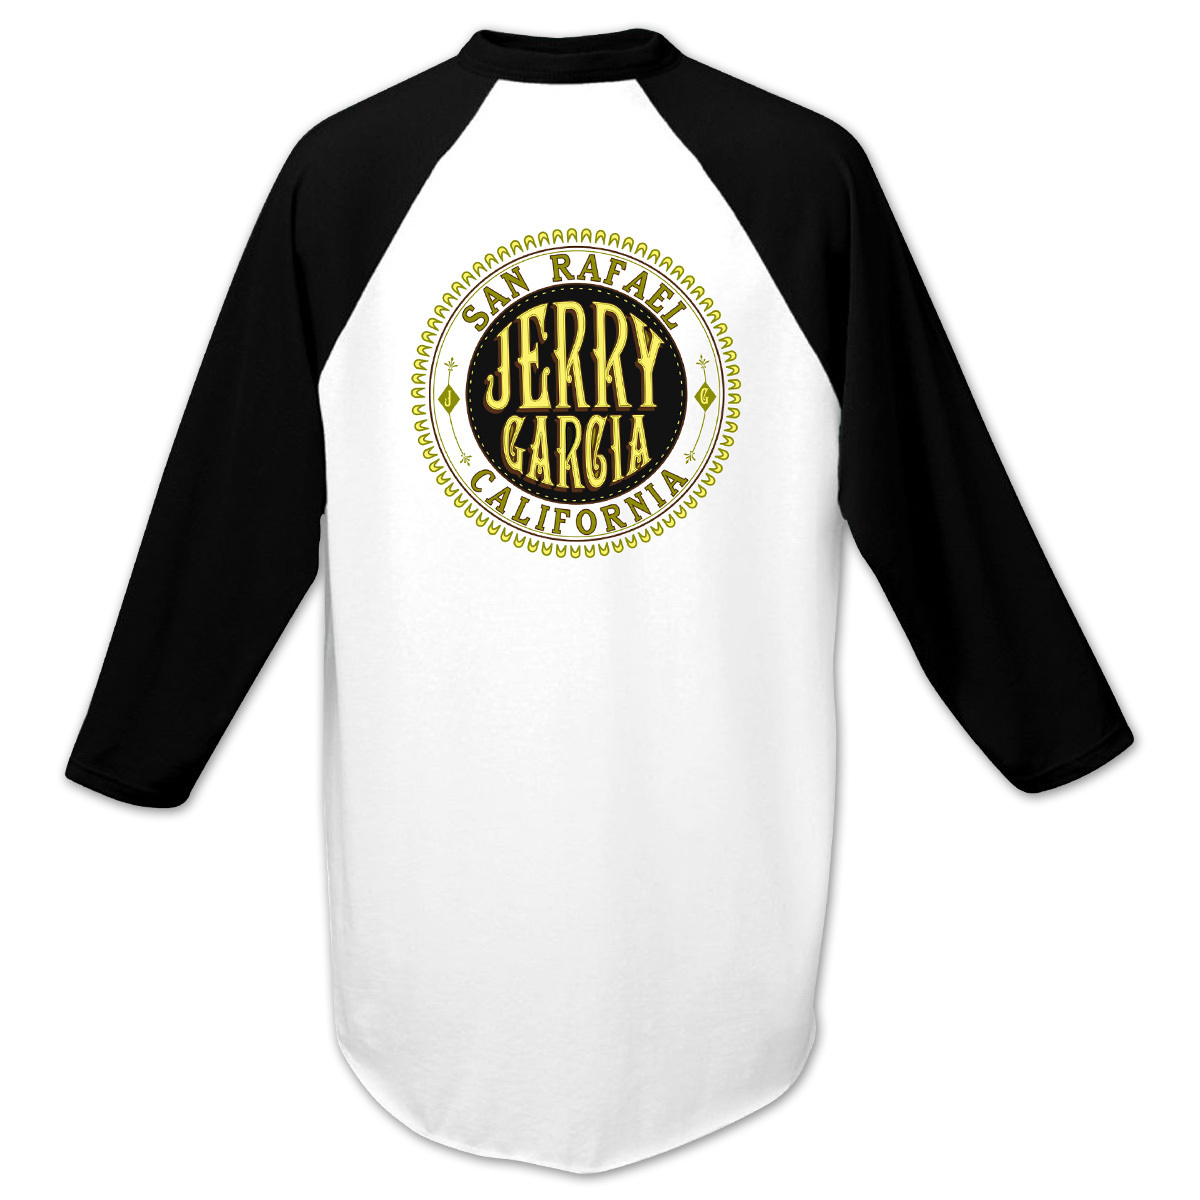 Jerry Garcia Baseball T-Shirt in Black